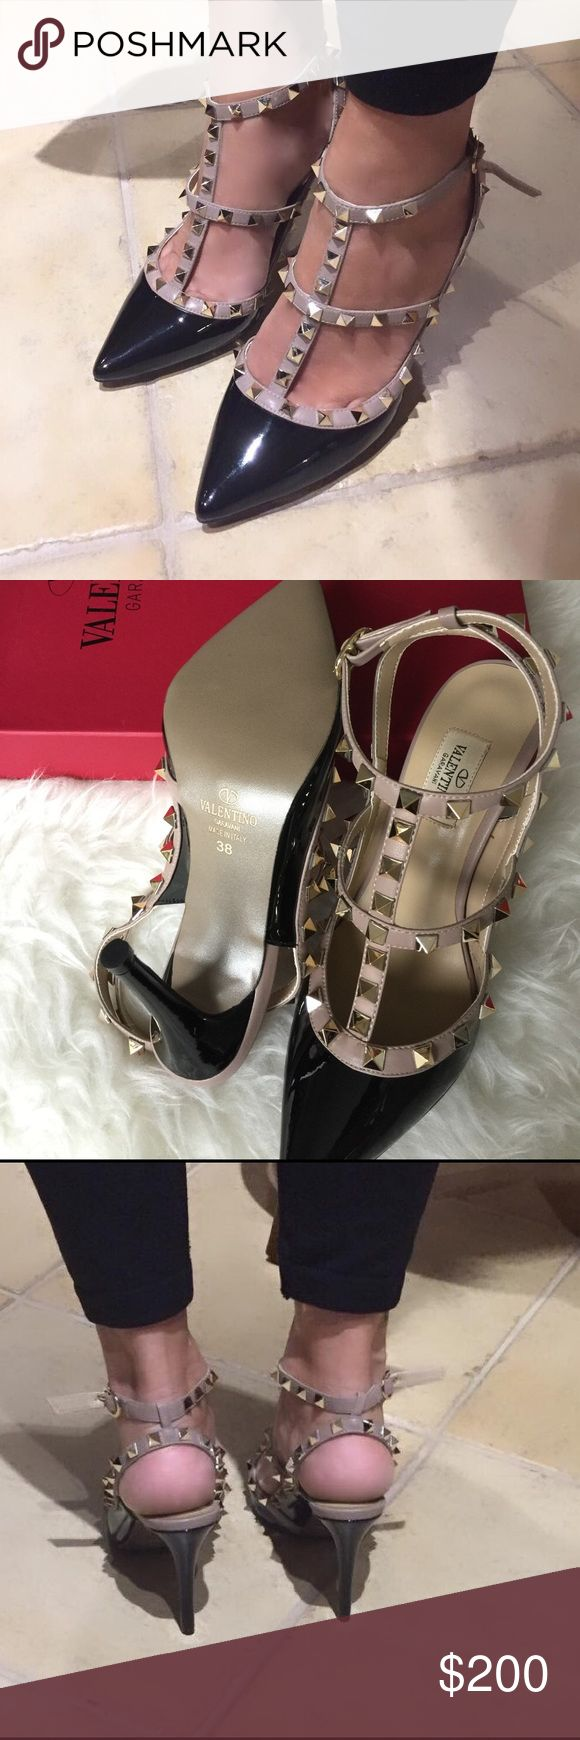 Valentino Rockstud shoes Valentino Black/nude edges with gold rockstud . Size 7 . Came with boxes . Price reflect auth--- Shoes Heels